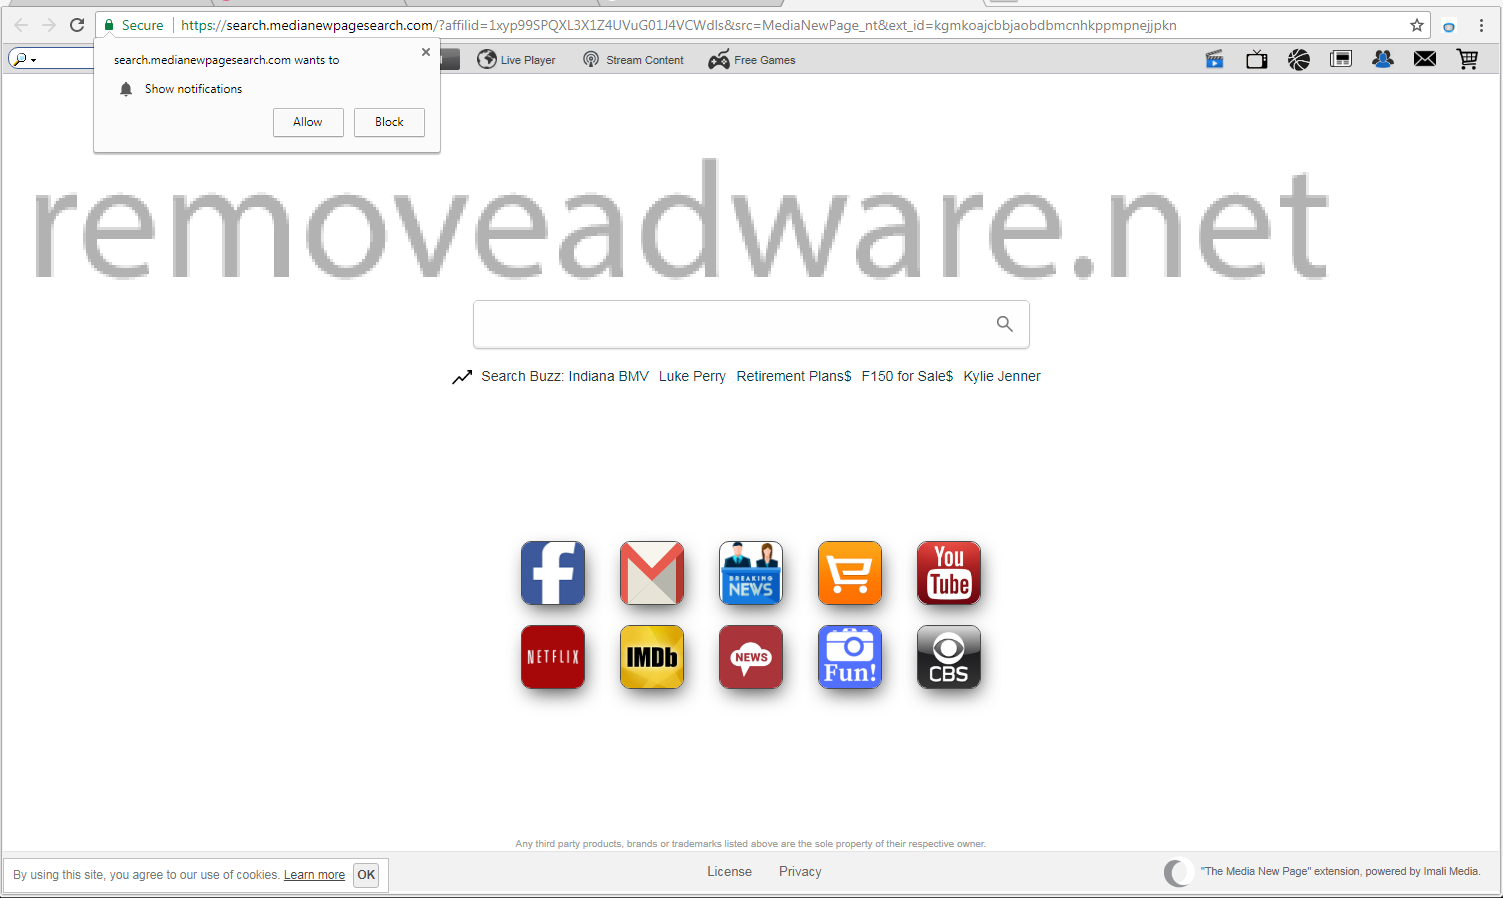 remove Medianewpagesearch.com